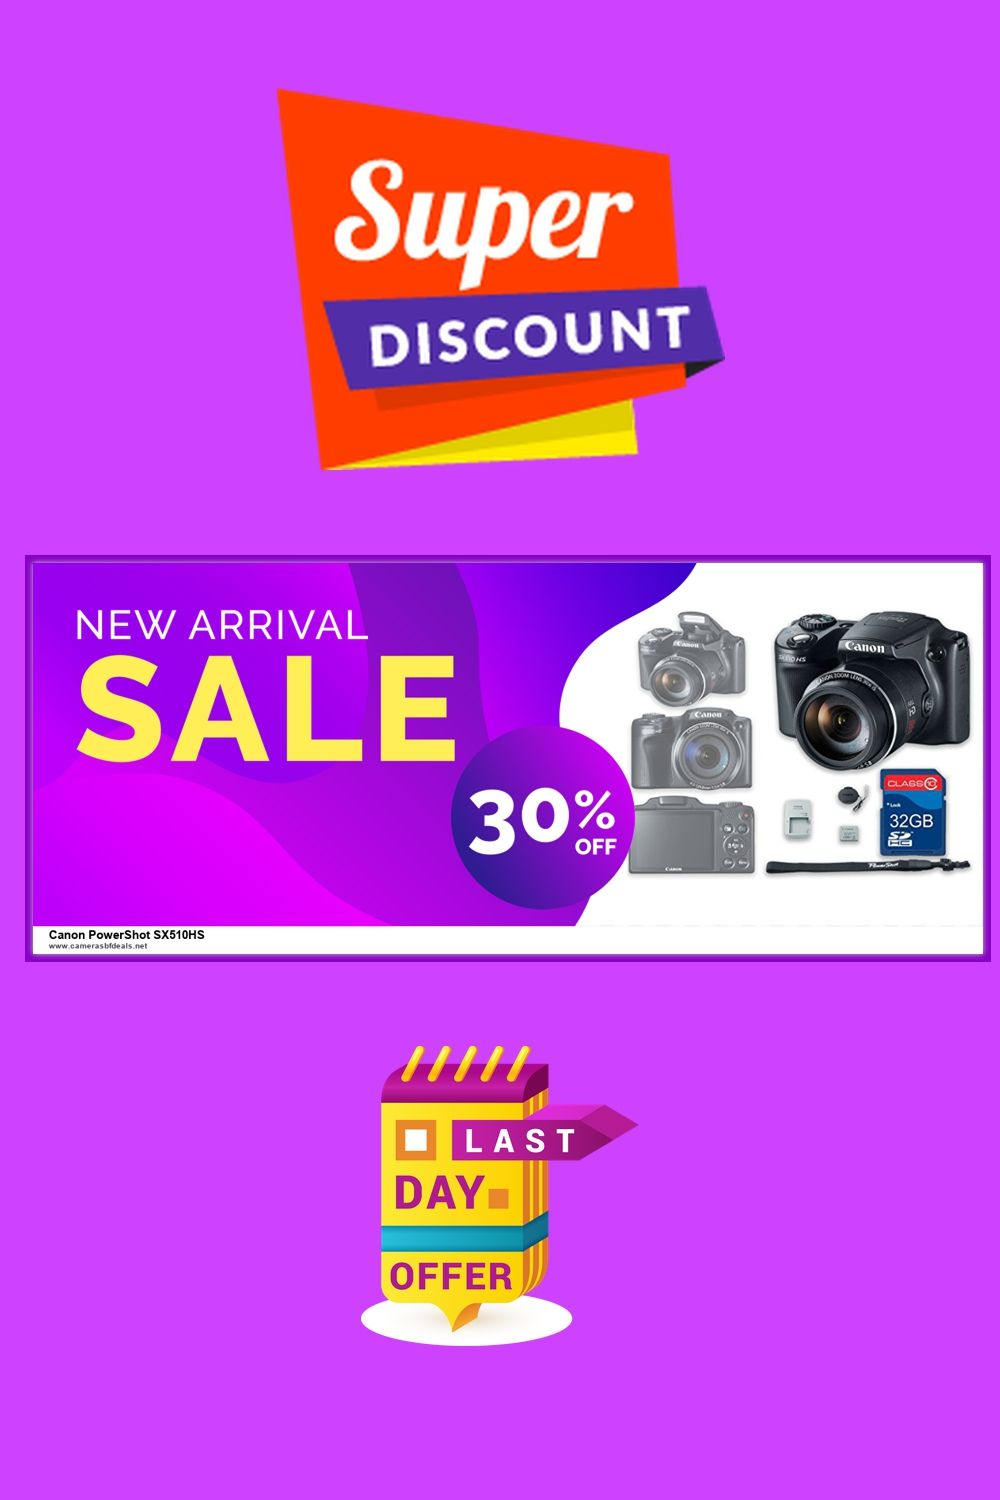 5 Best Sony Ilca Black Friday Deals 2020 In 2020 Black Friday Cyber Monday Deals Black Friday Deals